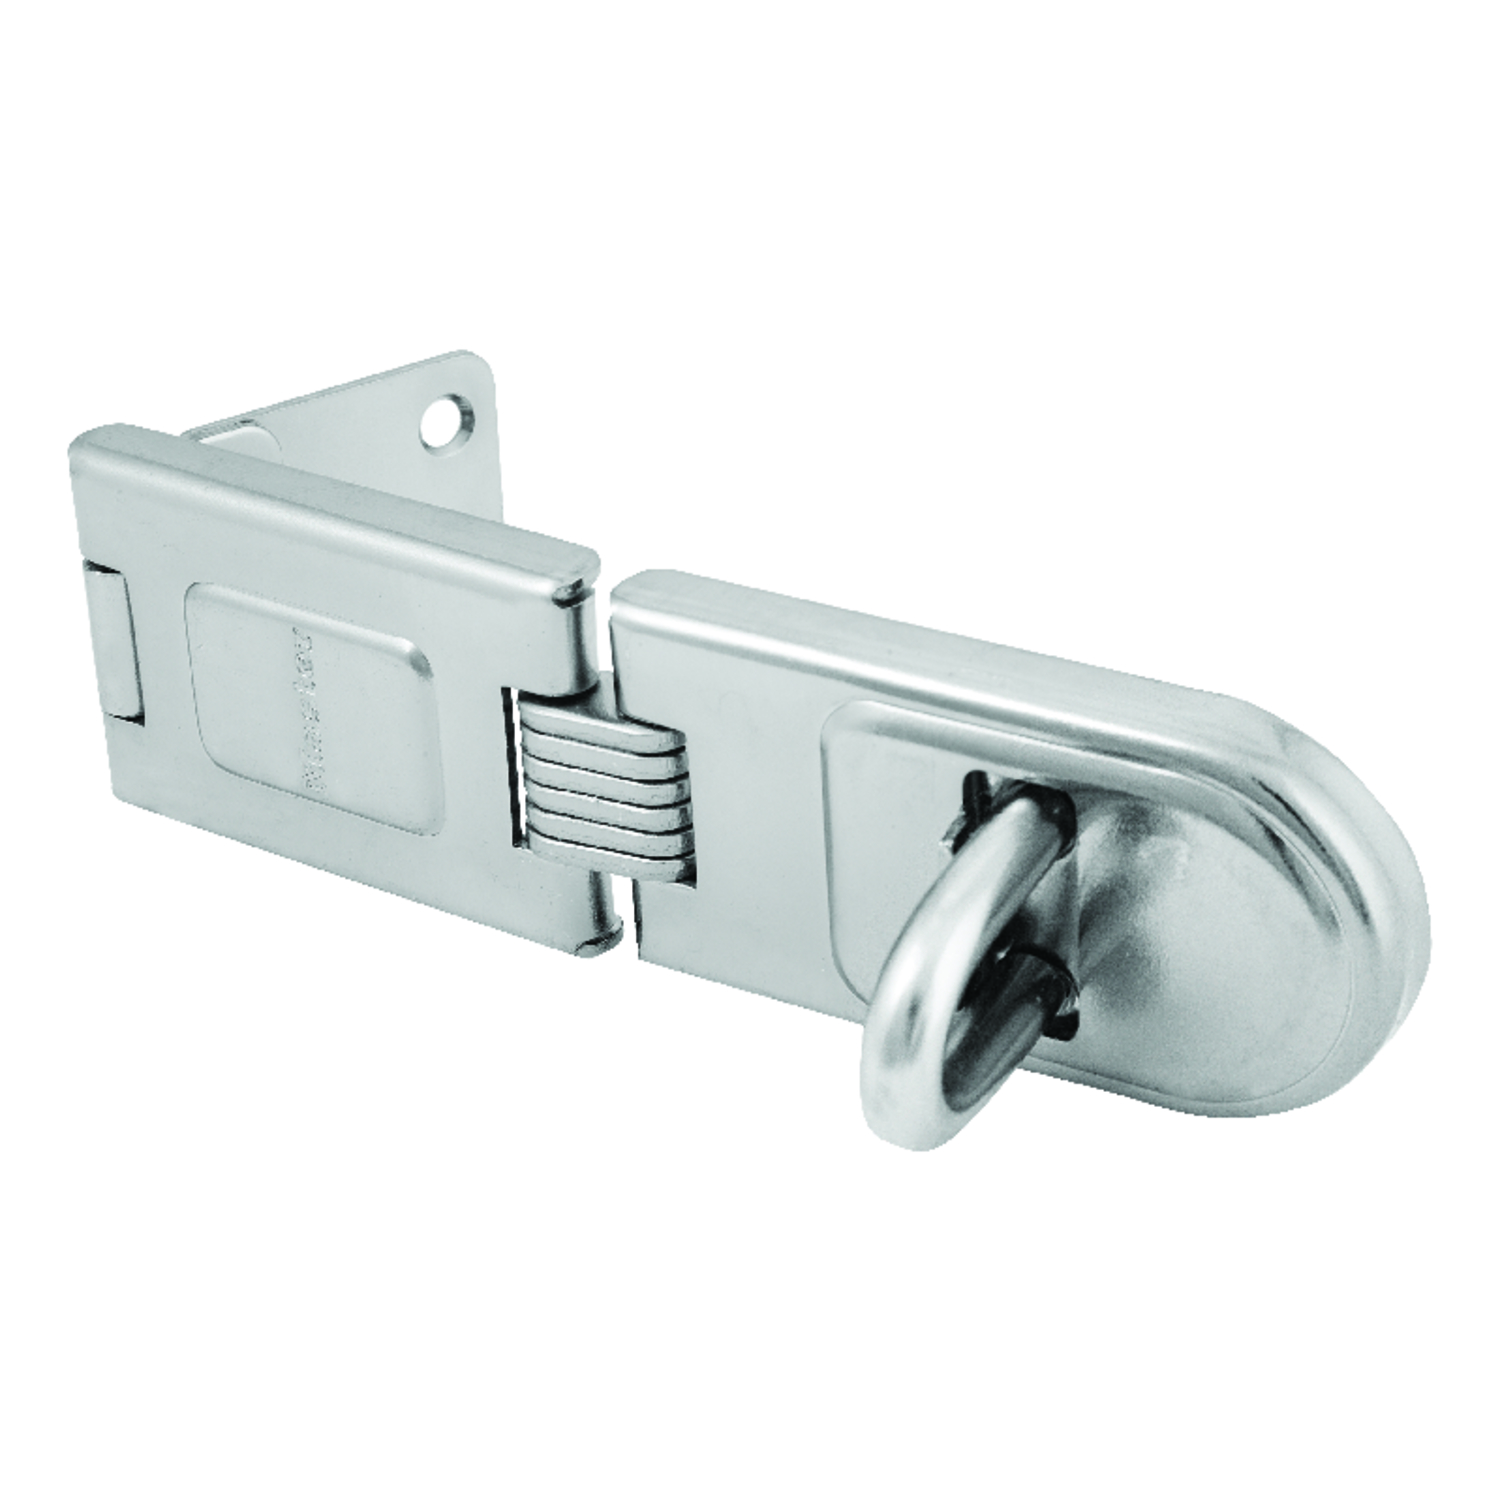 Marine Boat Hasp And Staple Small Cabinate Lock Latch Furniture Catch Fittings